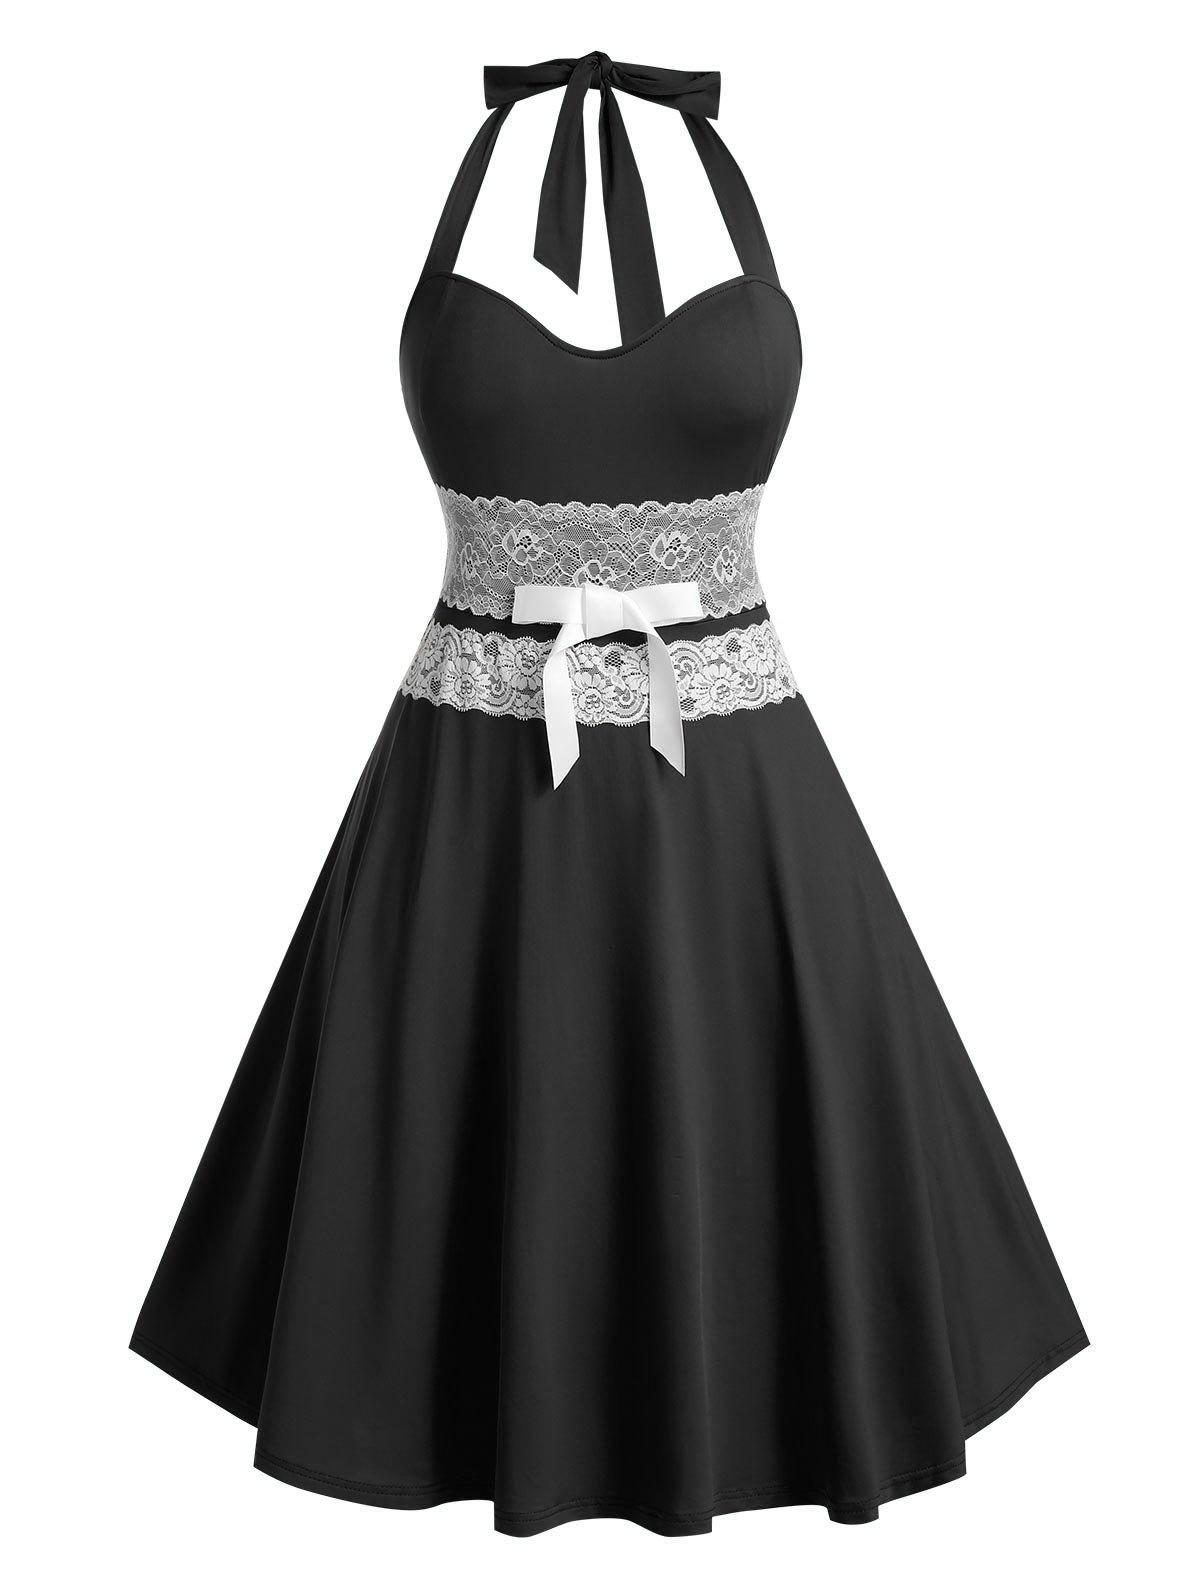 Hot Plus Size Bowknot Lace Up Halter Dress